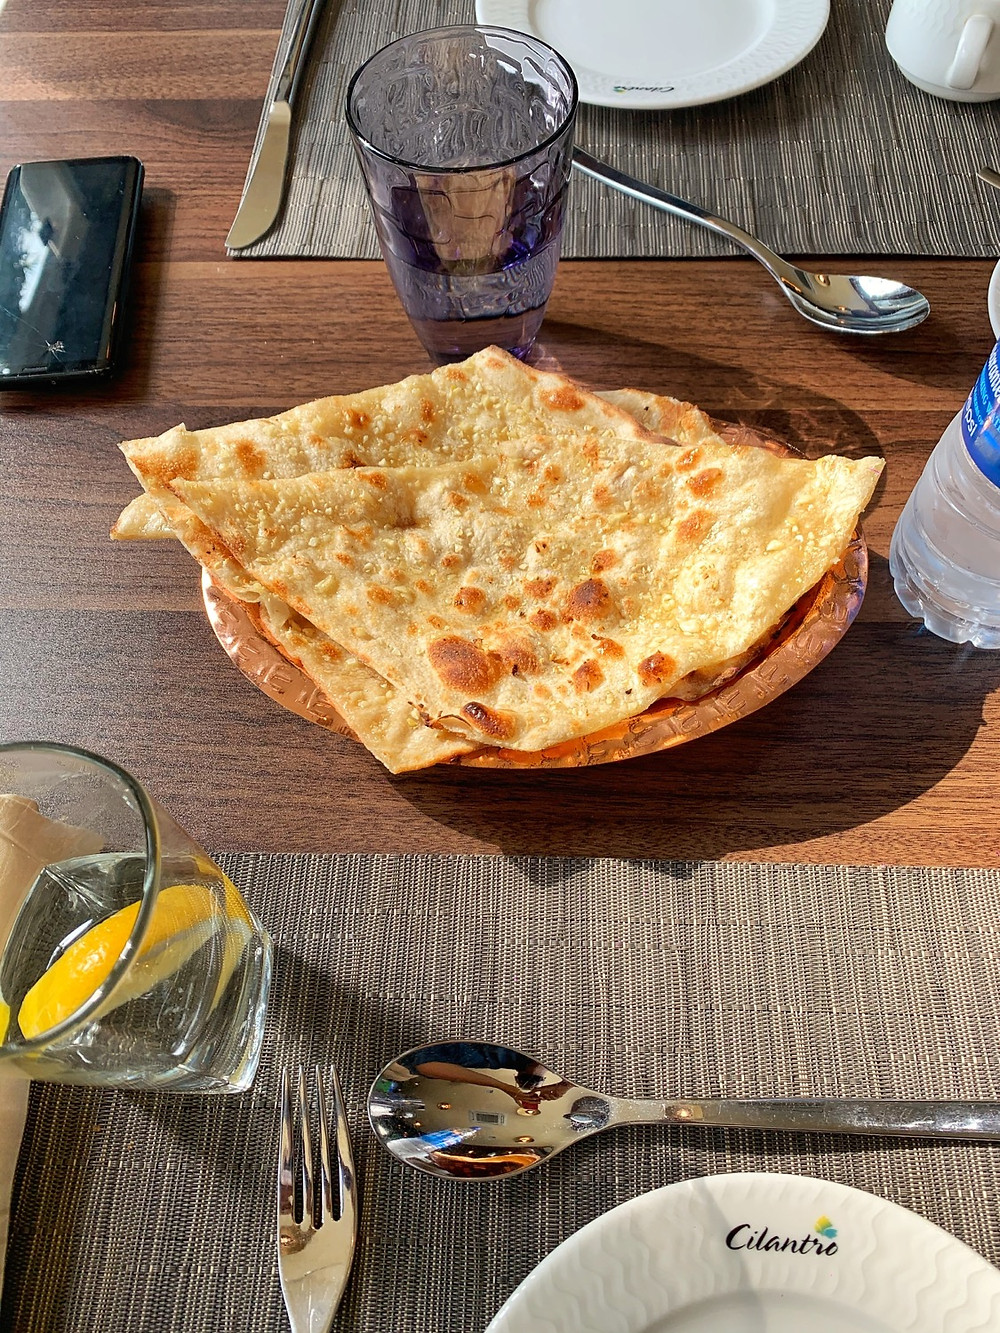 Garlic naan at Cilantro, Lagos